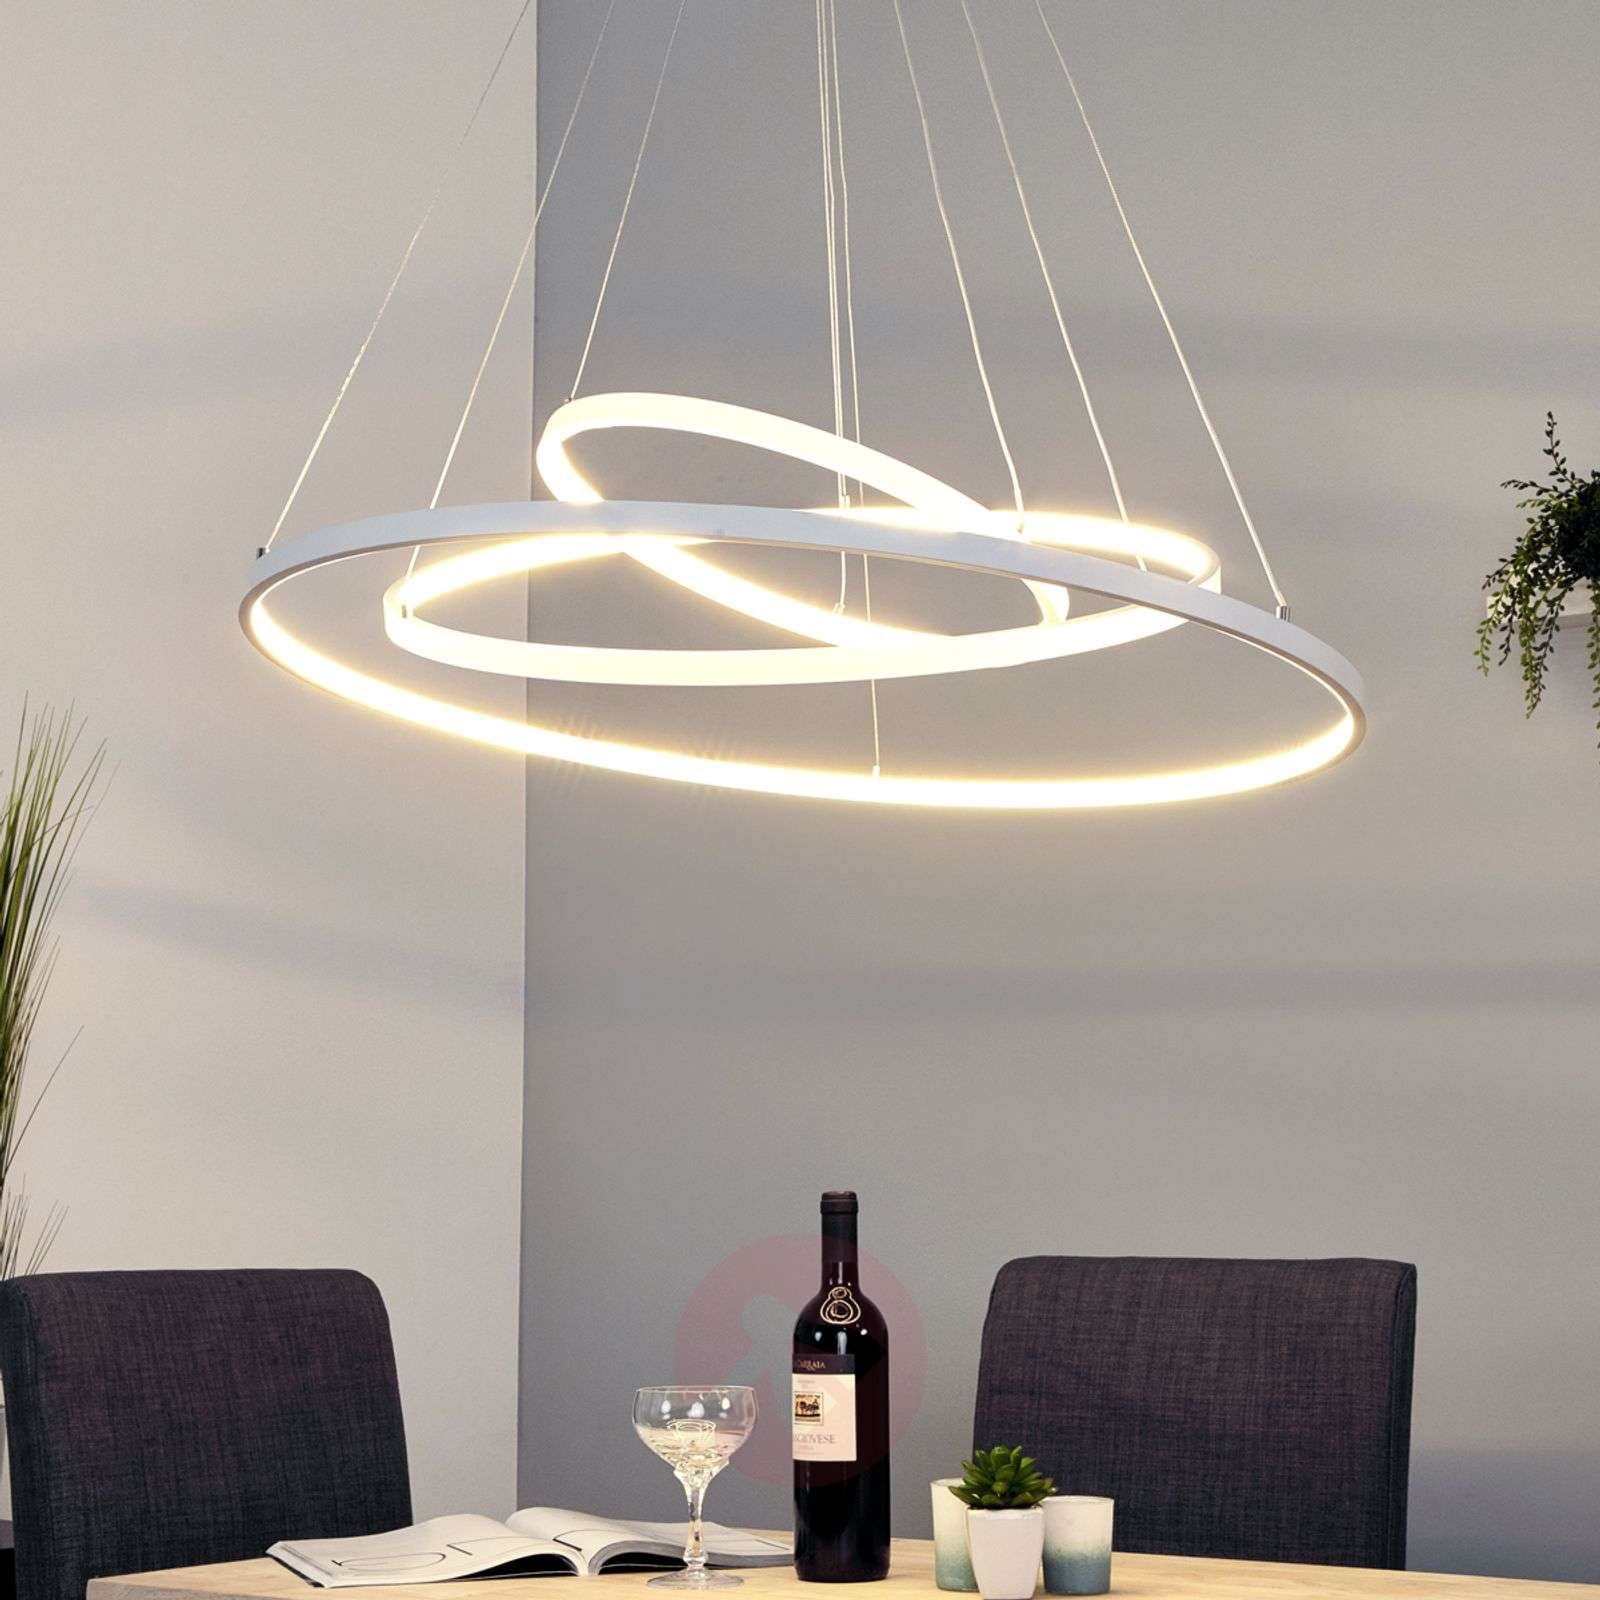 Powerful led pendant lamp eline with 3 rings lights powerful led pendant lamp eline with 3 rings 9987046 02 aloadofball Choice Image